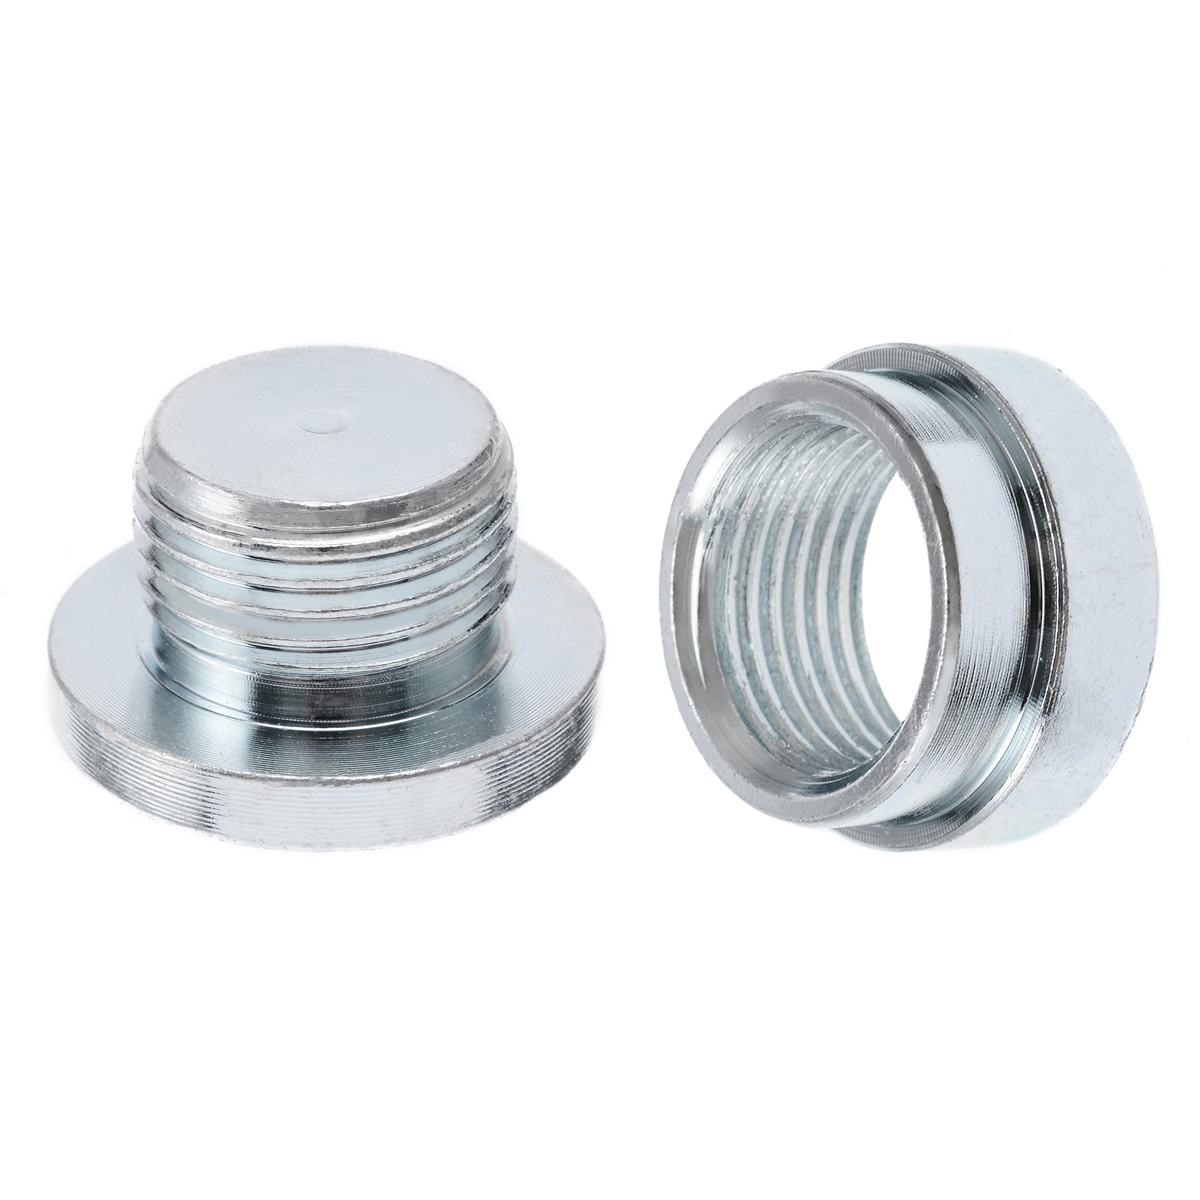 Mayitr 2pcs O2 Oxygen Sensor Stainless Steel Iron Weld On Bung Plug Nut Cap Kit M18x1.5